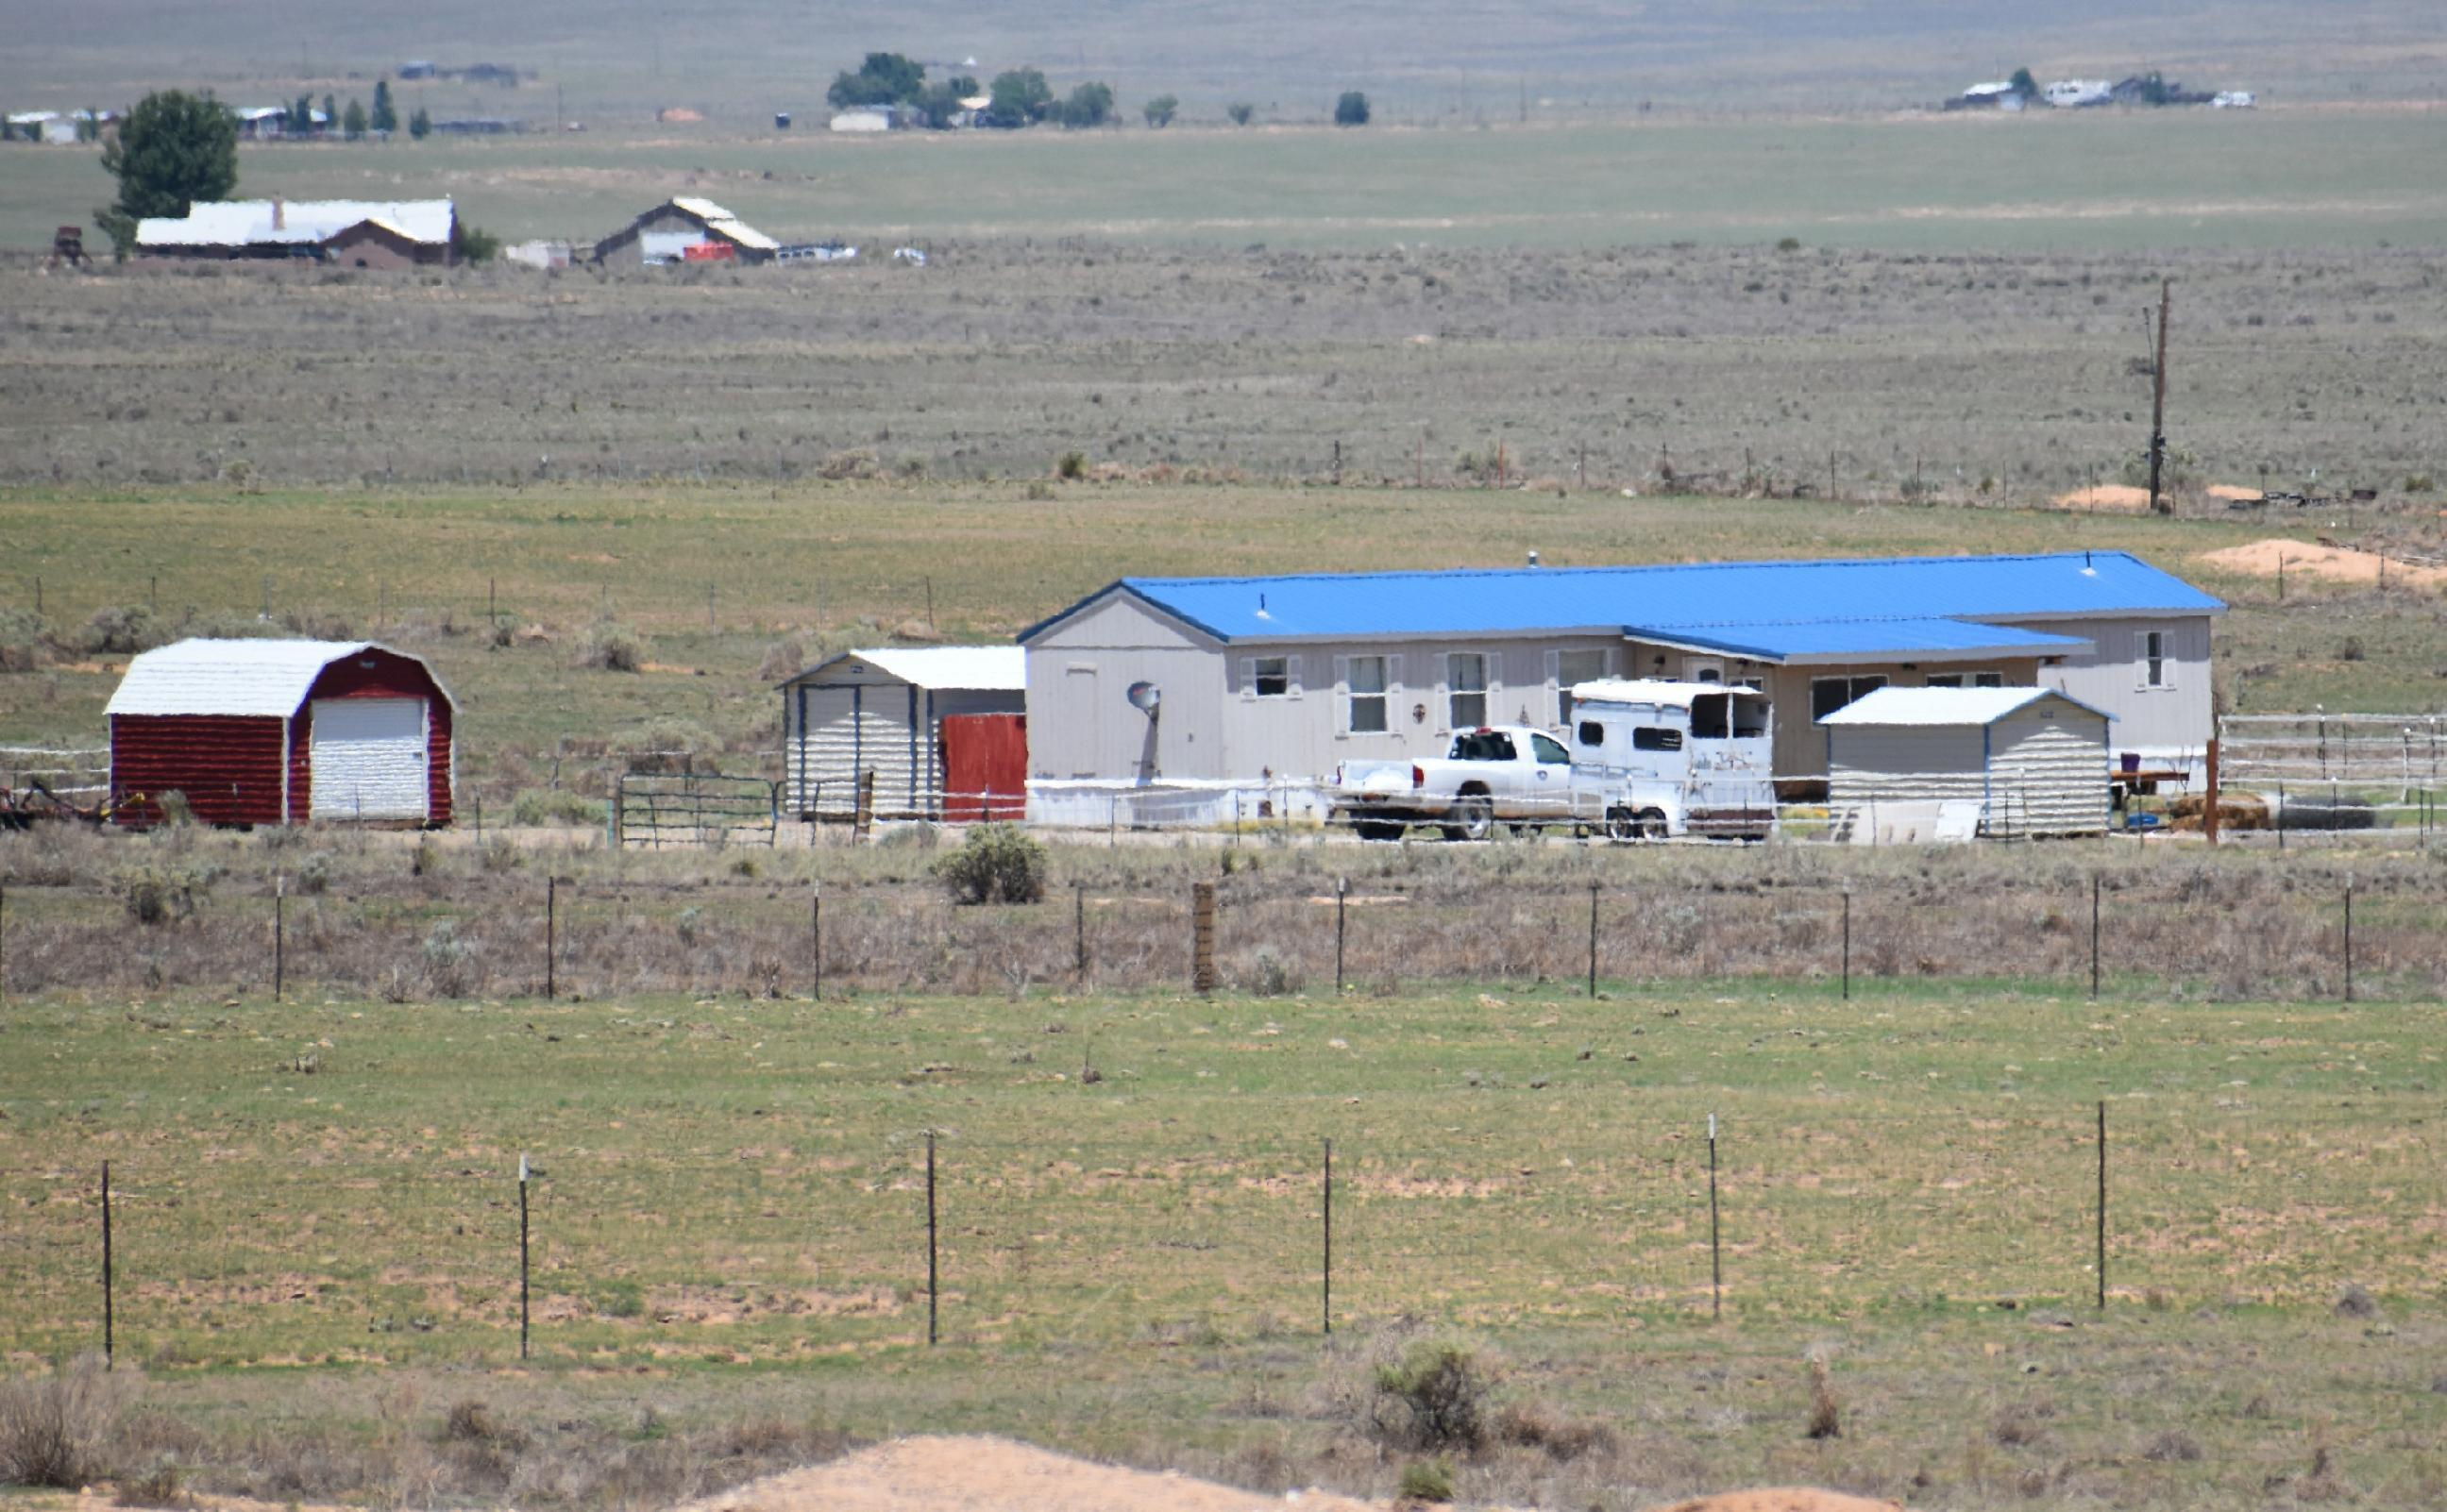 If you are seeking an affordable turnkey horse property, move-in ready, look no further, here it is.  Just under 5 acres, full-size arena, 1440 square foot mfd home with 240 sf add-on, 2-person hot tub, refrigerated air, pellet stove, land fully fenced and cross-fenced, 3 storage outbuildings, 2 barn type outbuildings, power and water at barns, power at arena and 2 of the storage buildings, graveled driveway with two large gates, new window screens in home, several very nicely done upgrades to home interior, acceptable offer can include tractor with disc and mower.